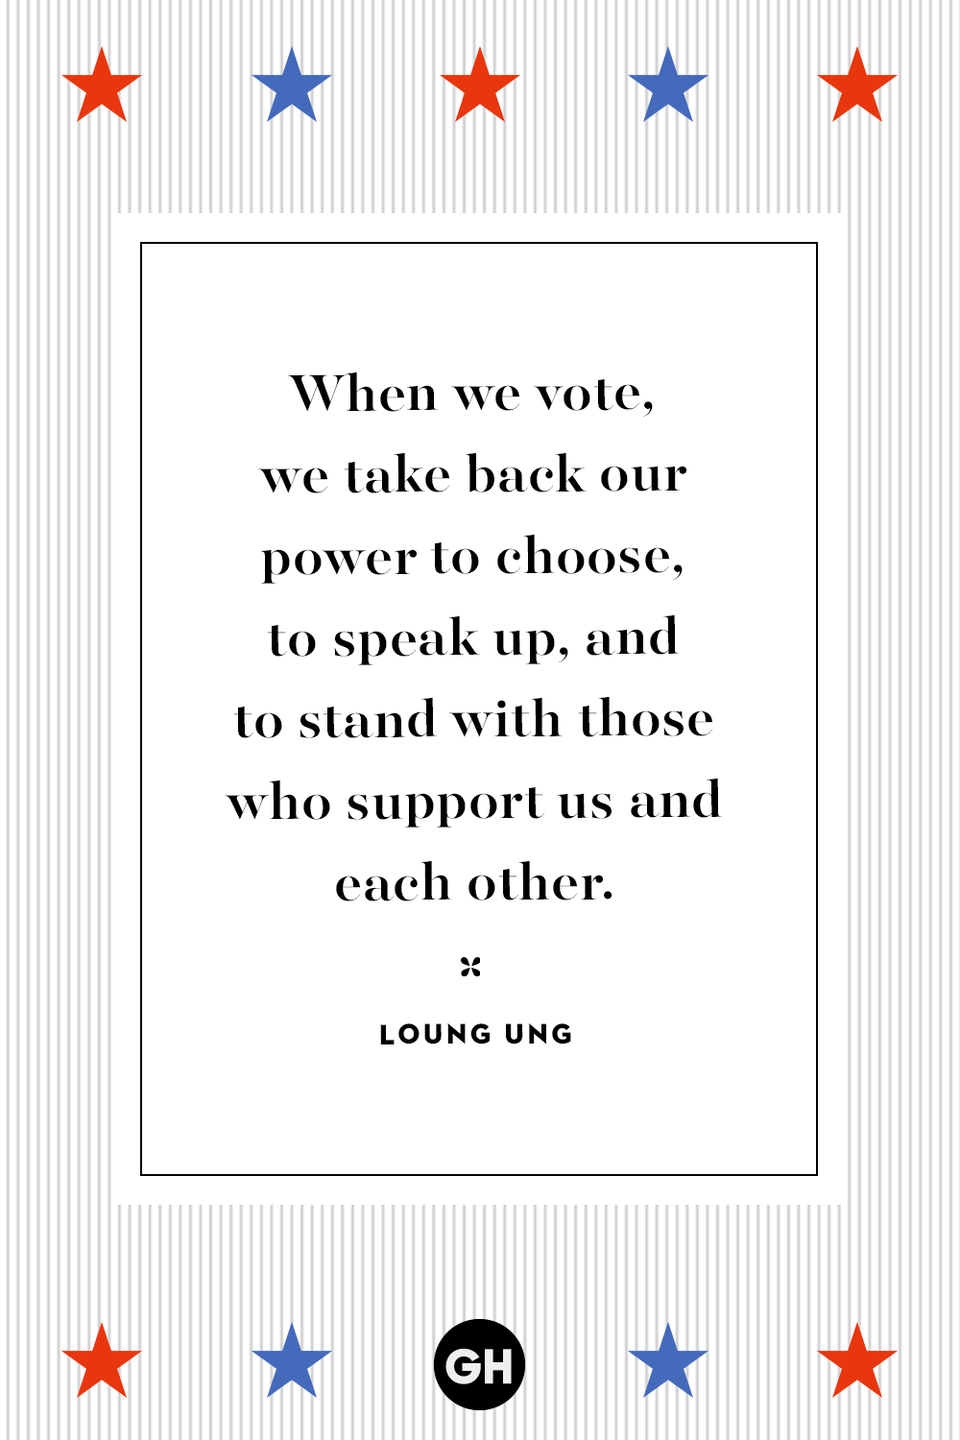 <p>When we vote, we take back our power to choose, to speak up, and to stand with those who support us and each other.</p>